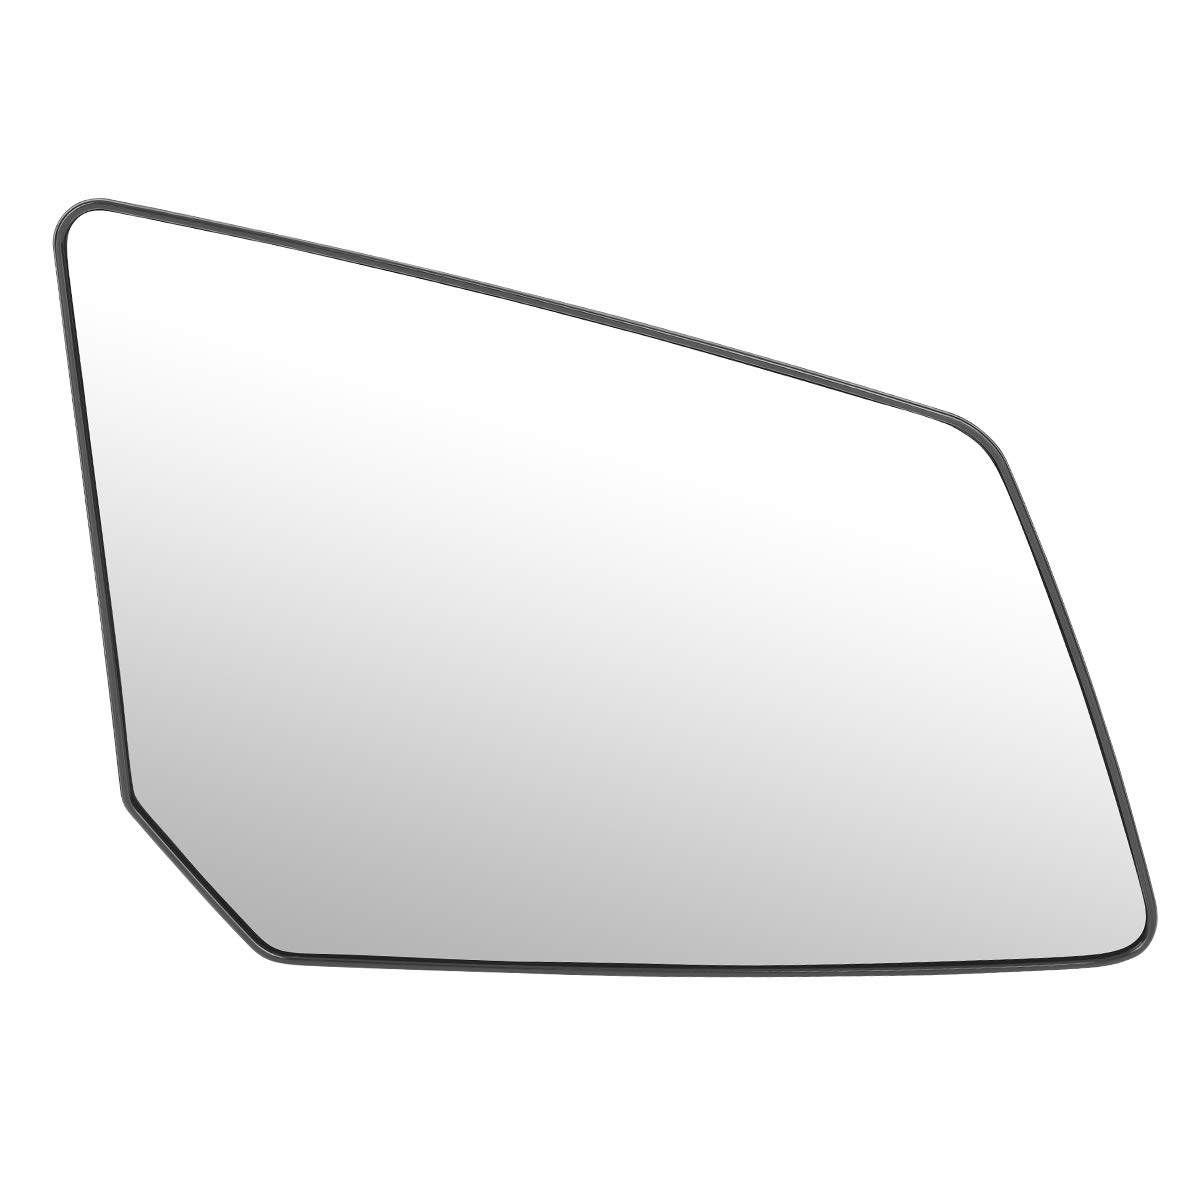 25990003 OE Style Passenger//Right Mirror Glass Lens for GMC Acadia Chevy Traverse Saturn Outlook 07-17